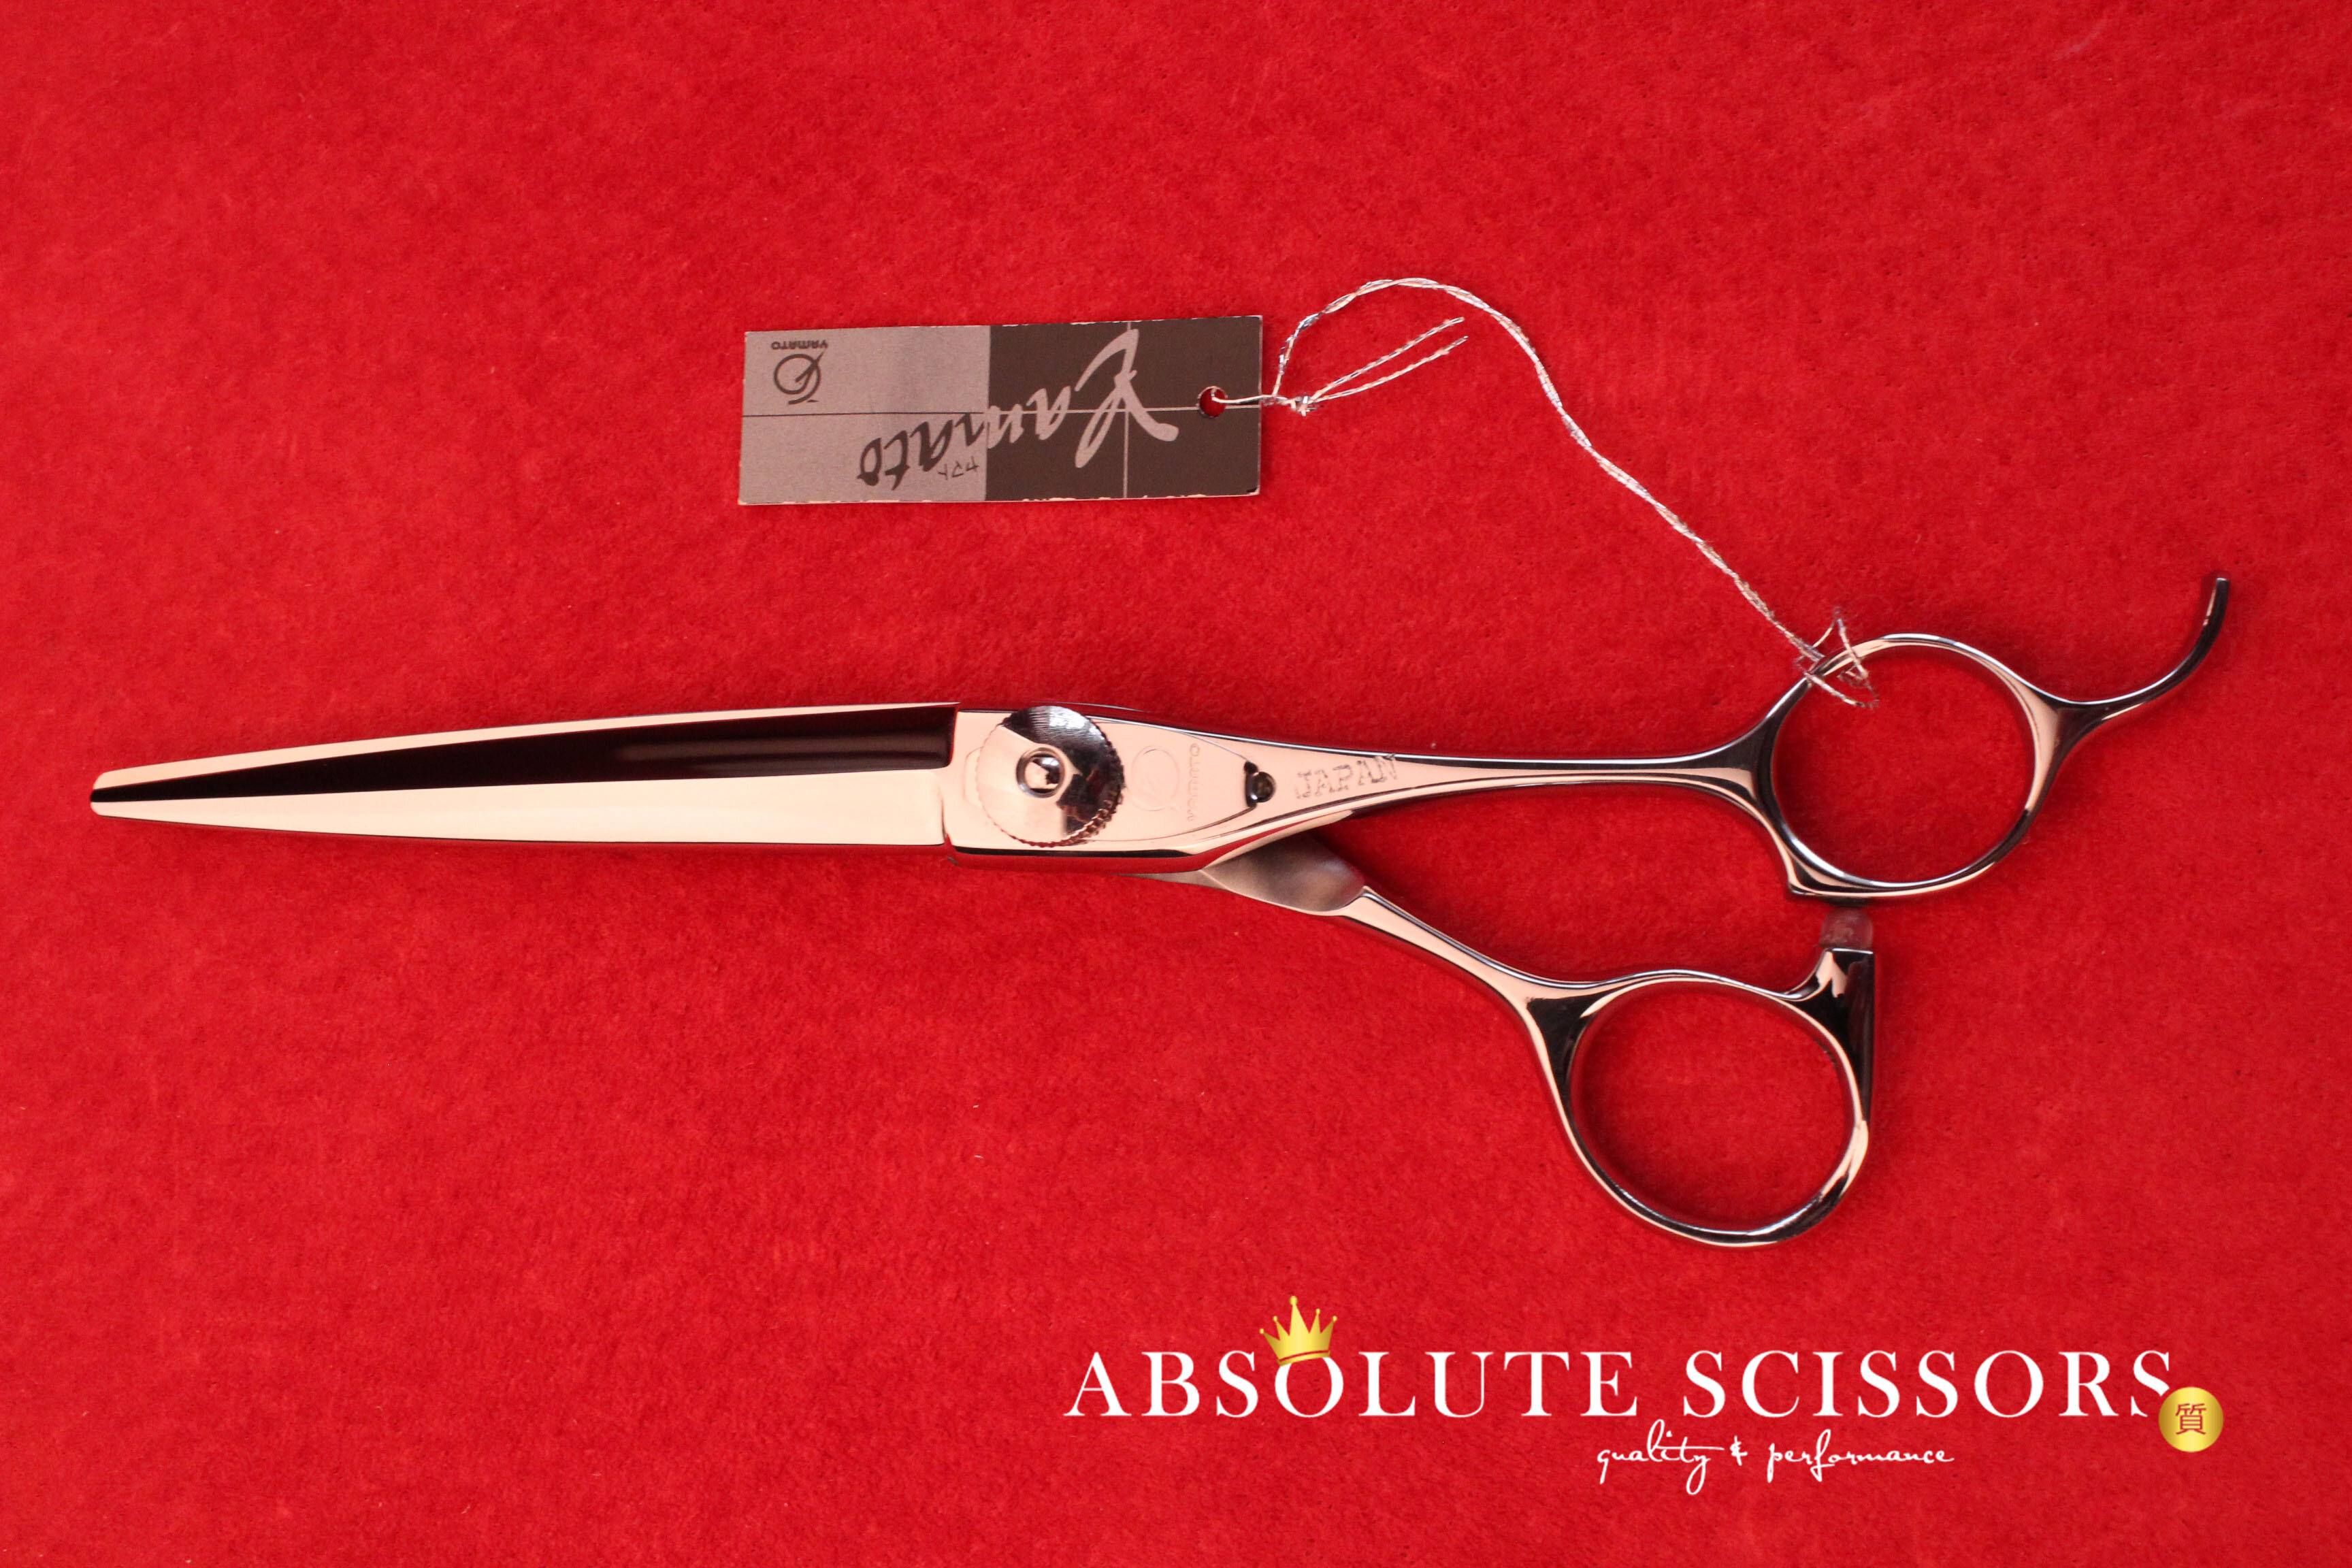 Royal W65 3751 Yamato hair scissors size 6.5 inches